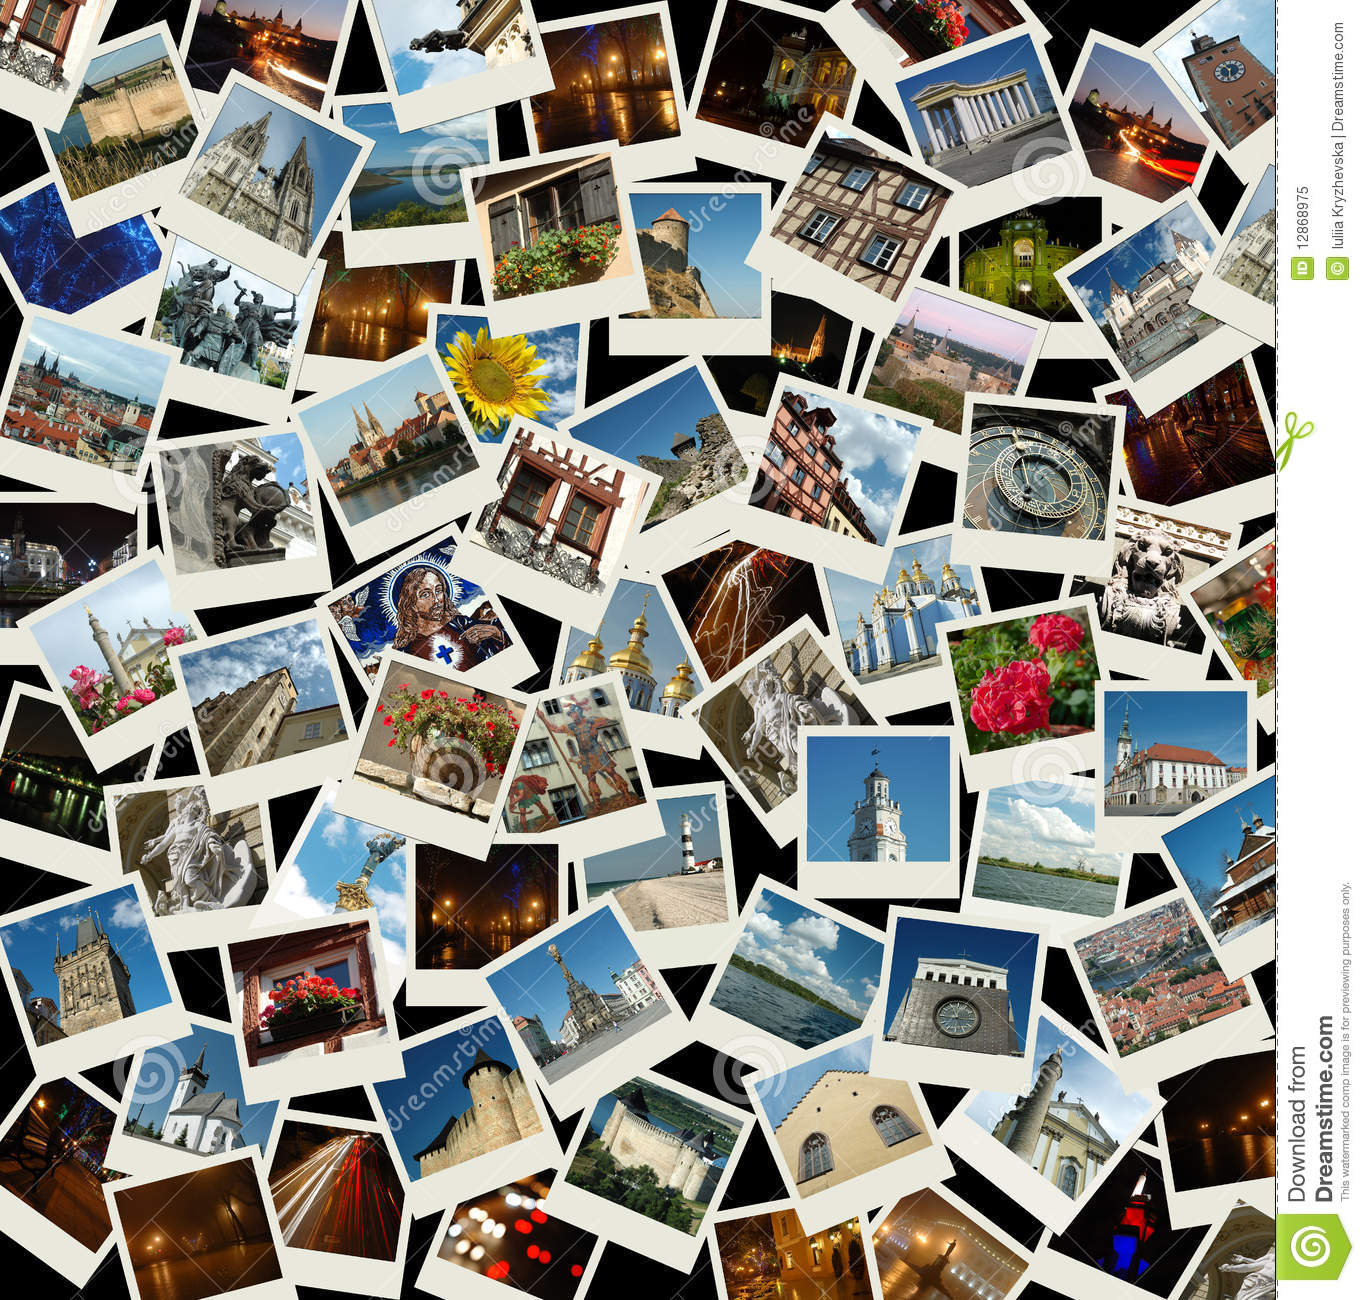 va europa collage con las fotos de europa foto de archivo libre de regal as imagen 12868975. Black Bedroom Furniture Sets. Home Design Ideas